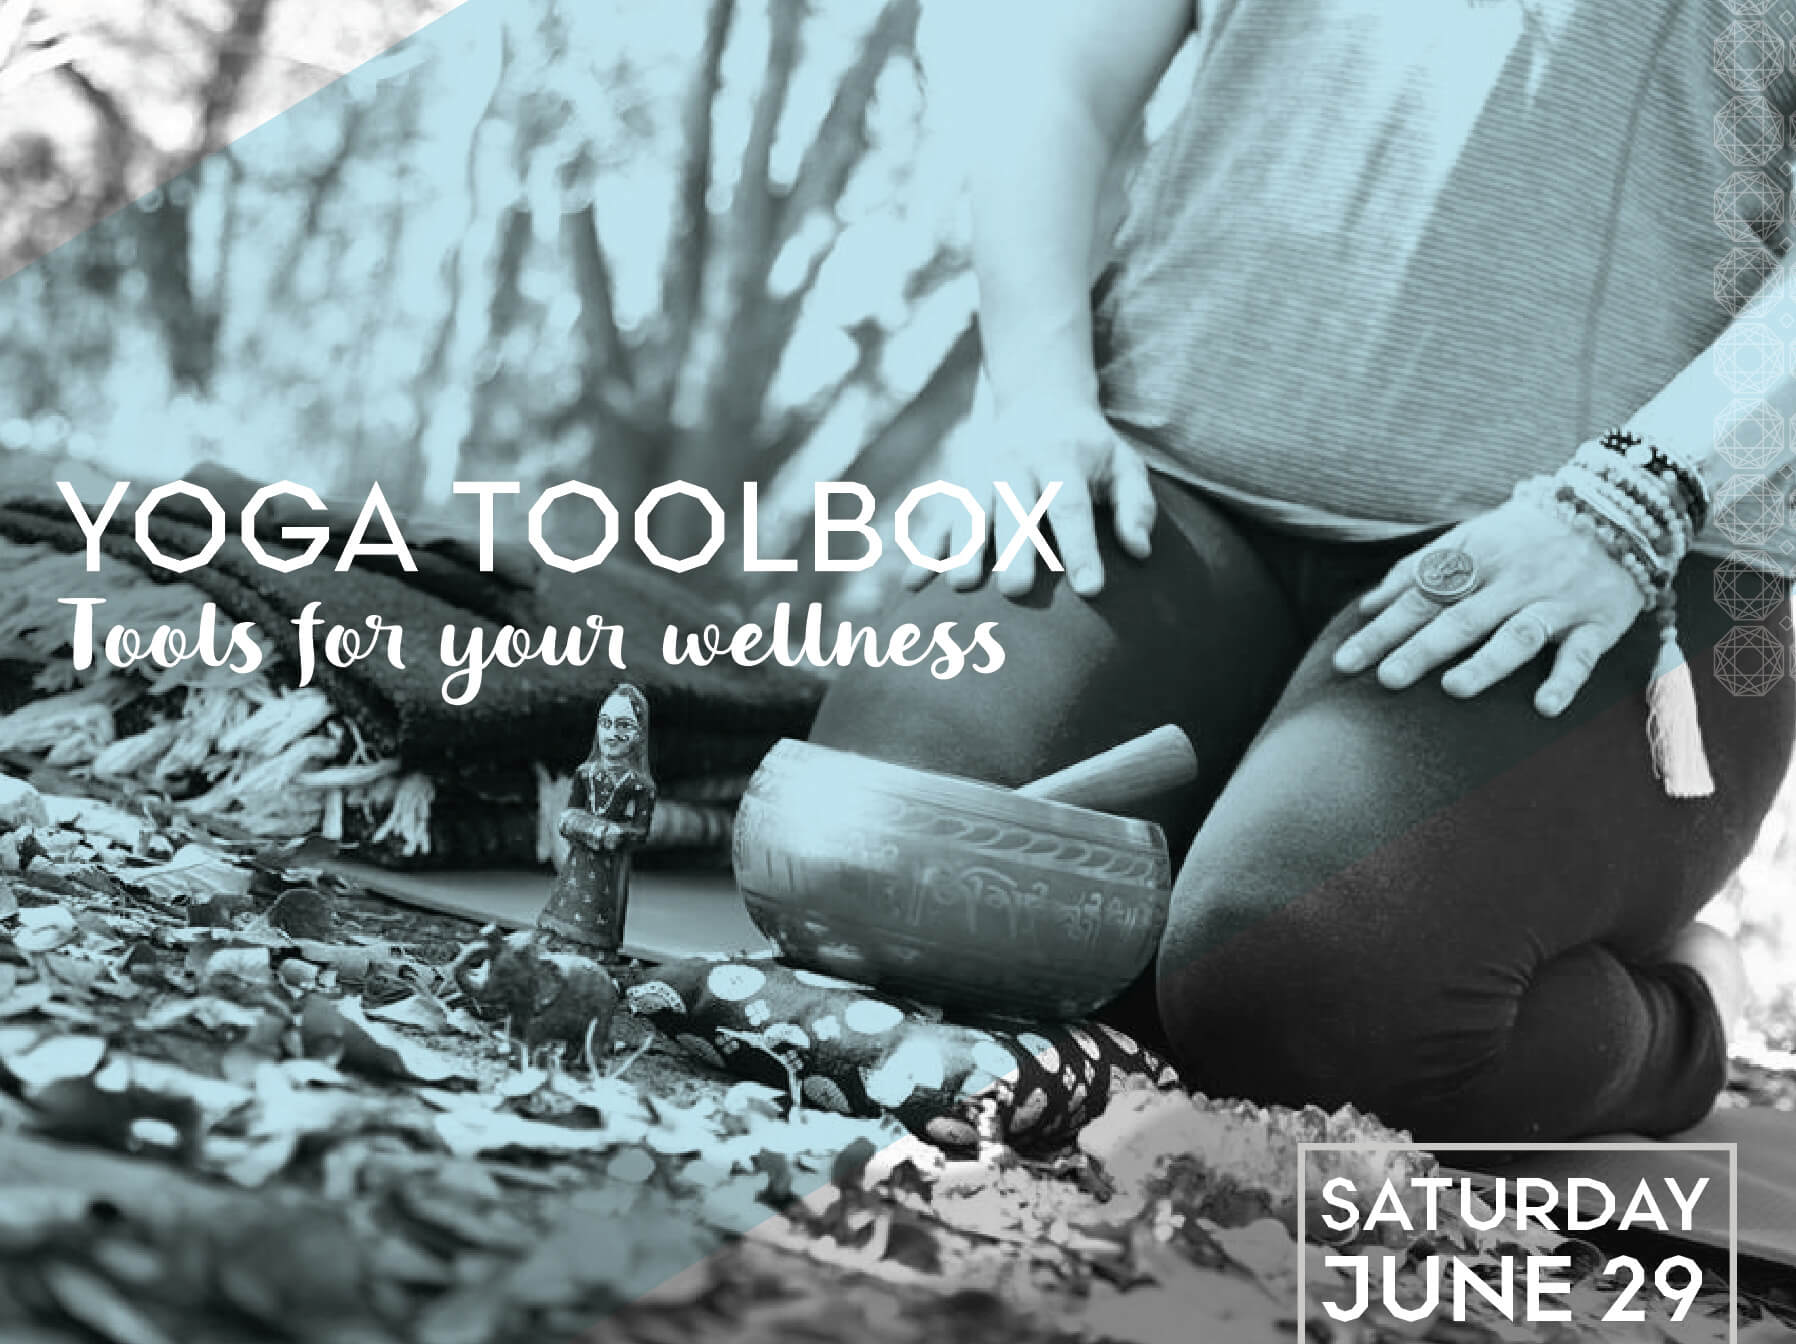 Yoga Toolbox: Tools for Your Wellness